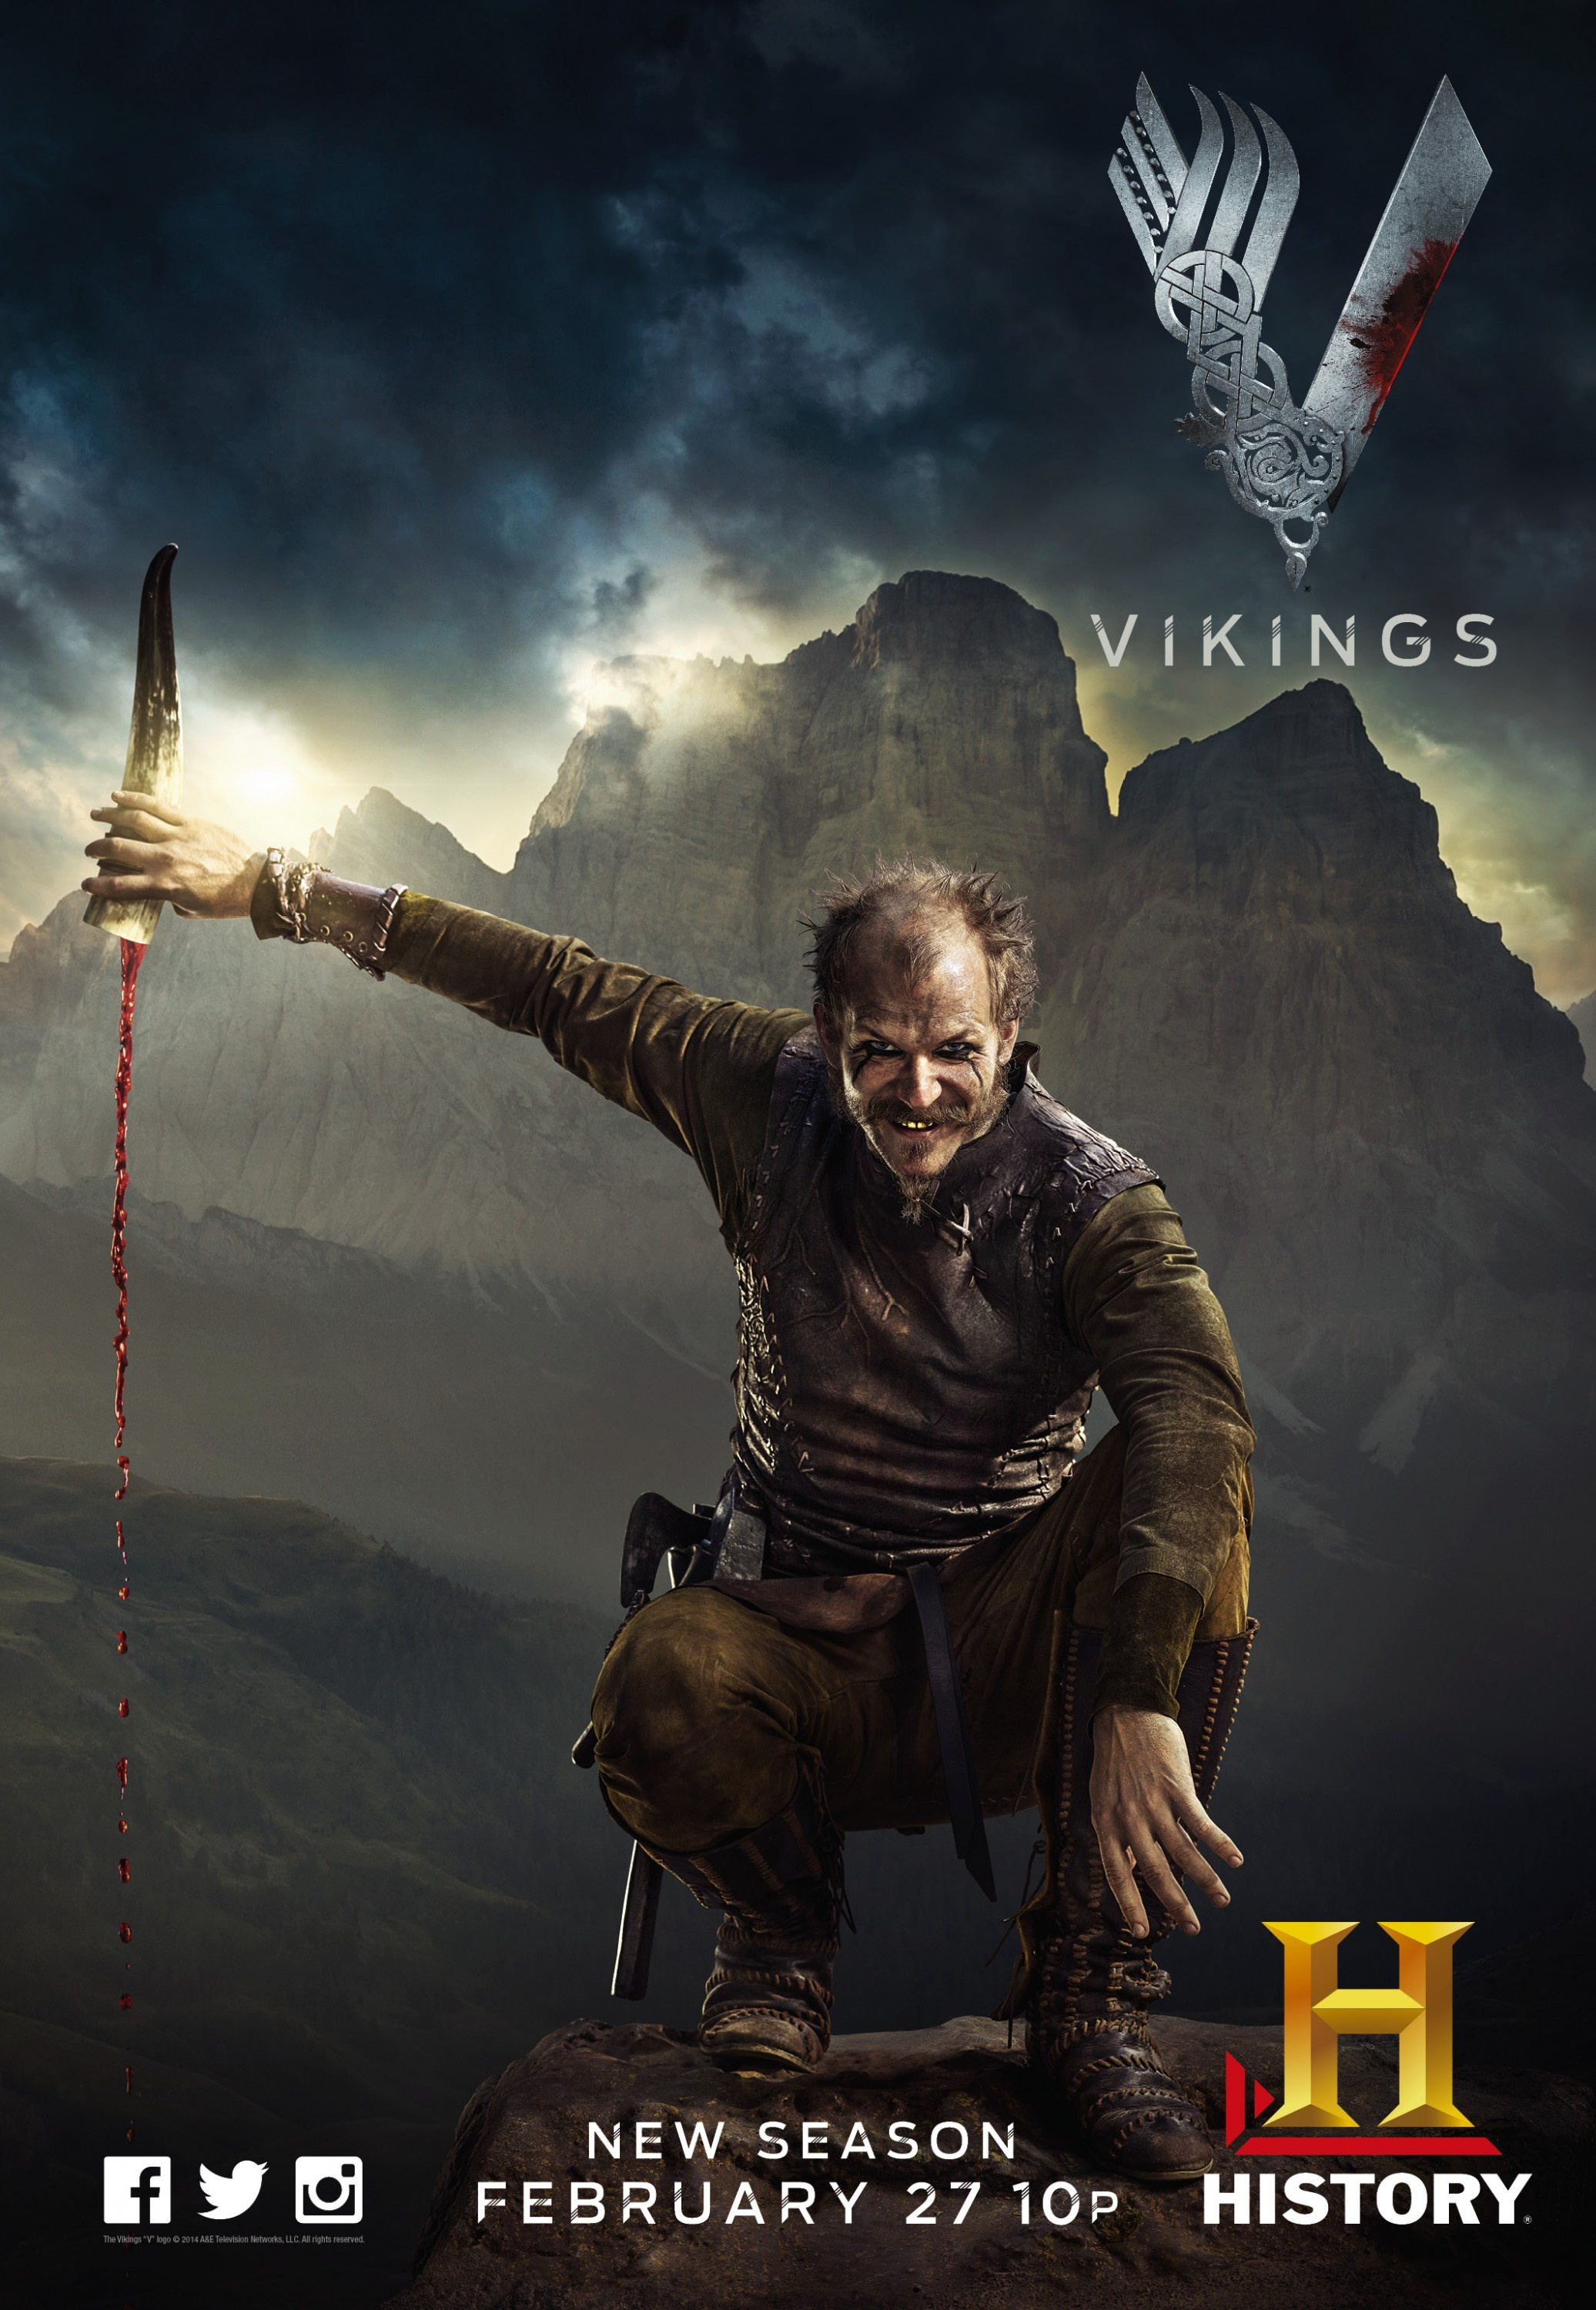 Exceptionnel Photo Vikings Posters saison 2 - Series Addict CE94